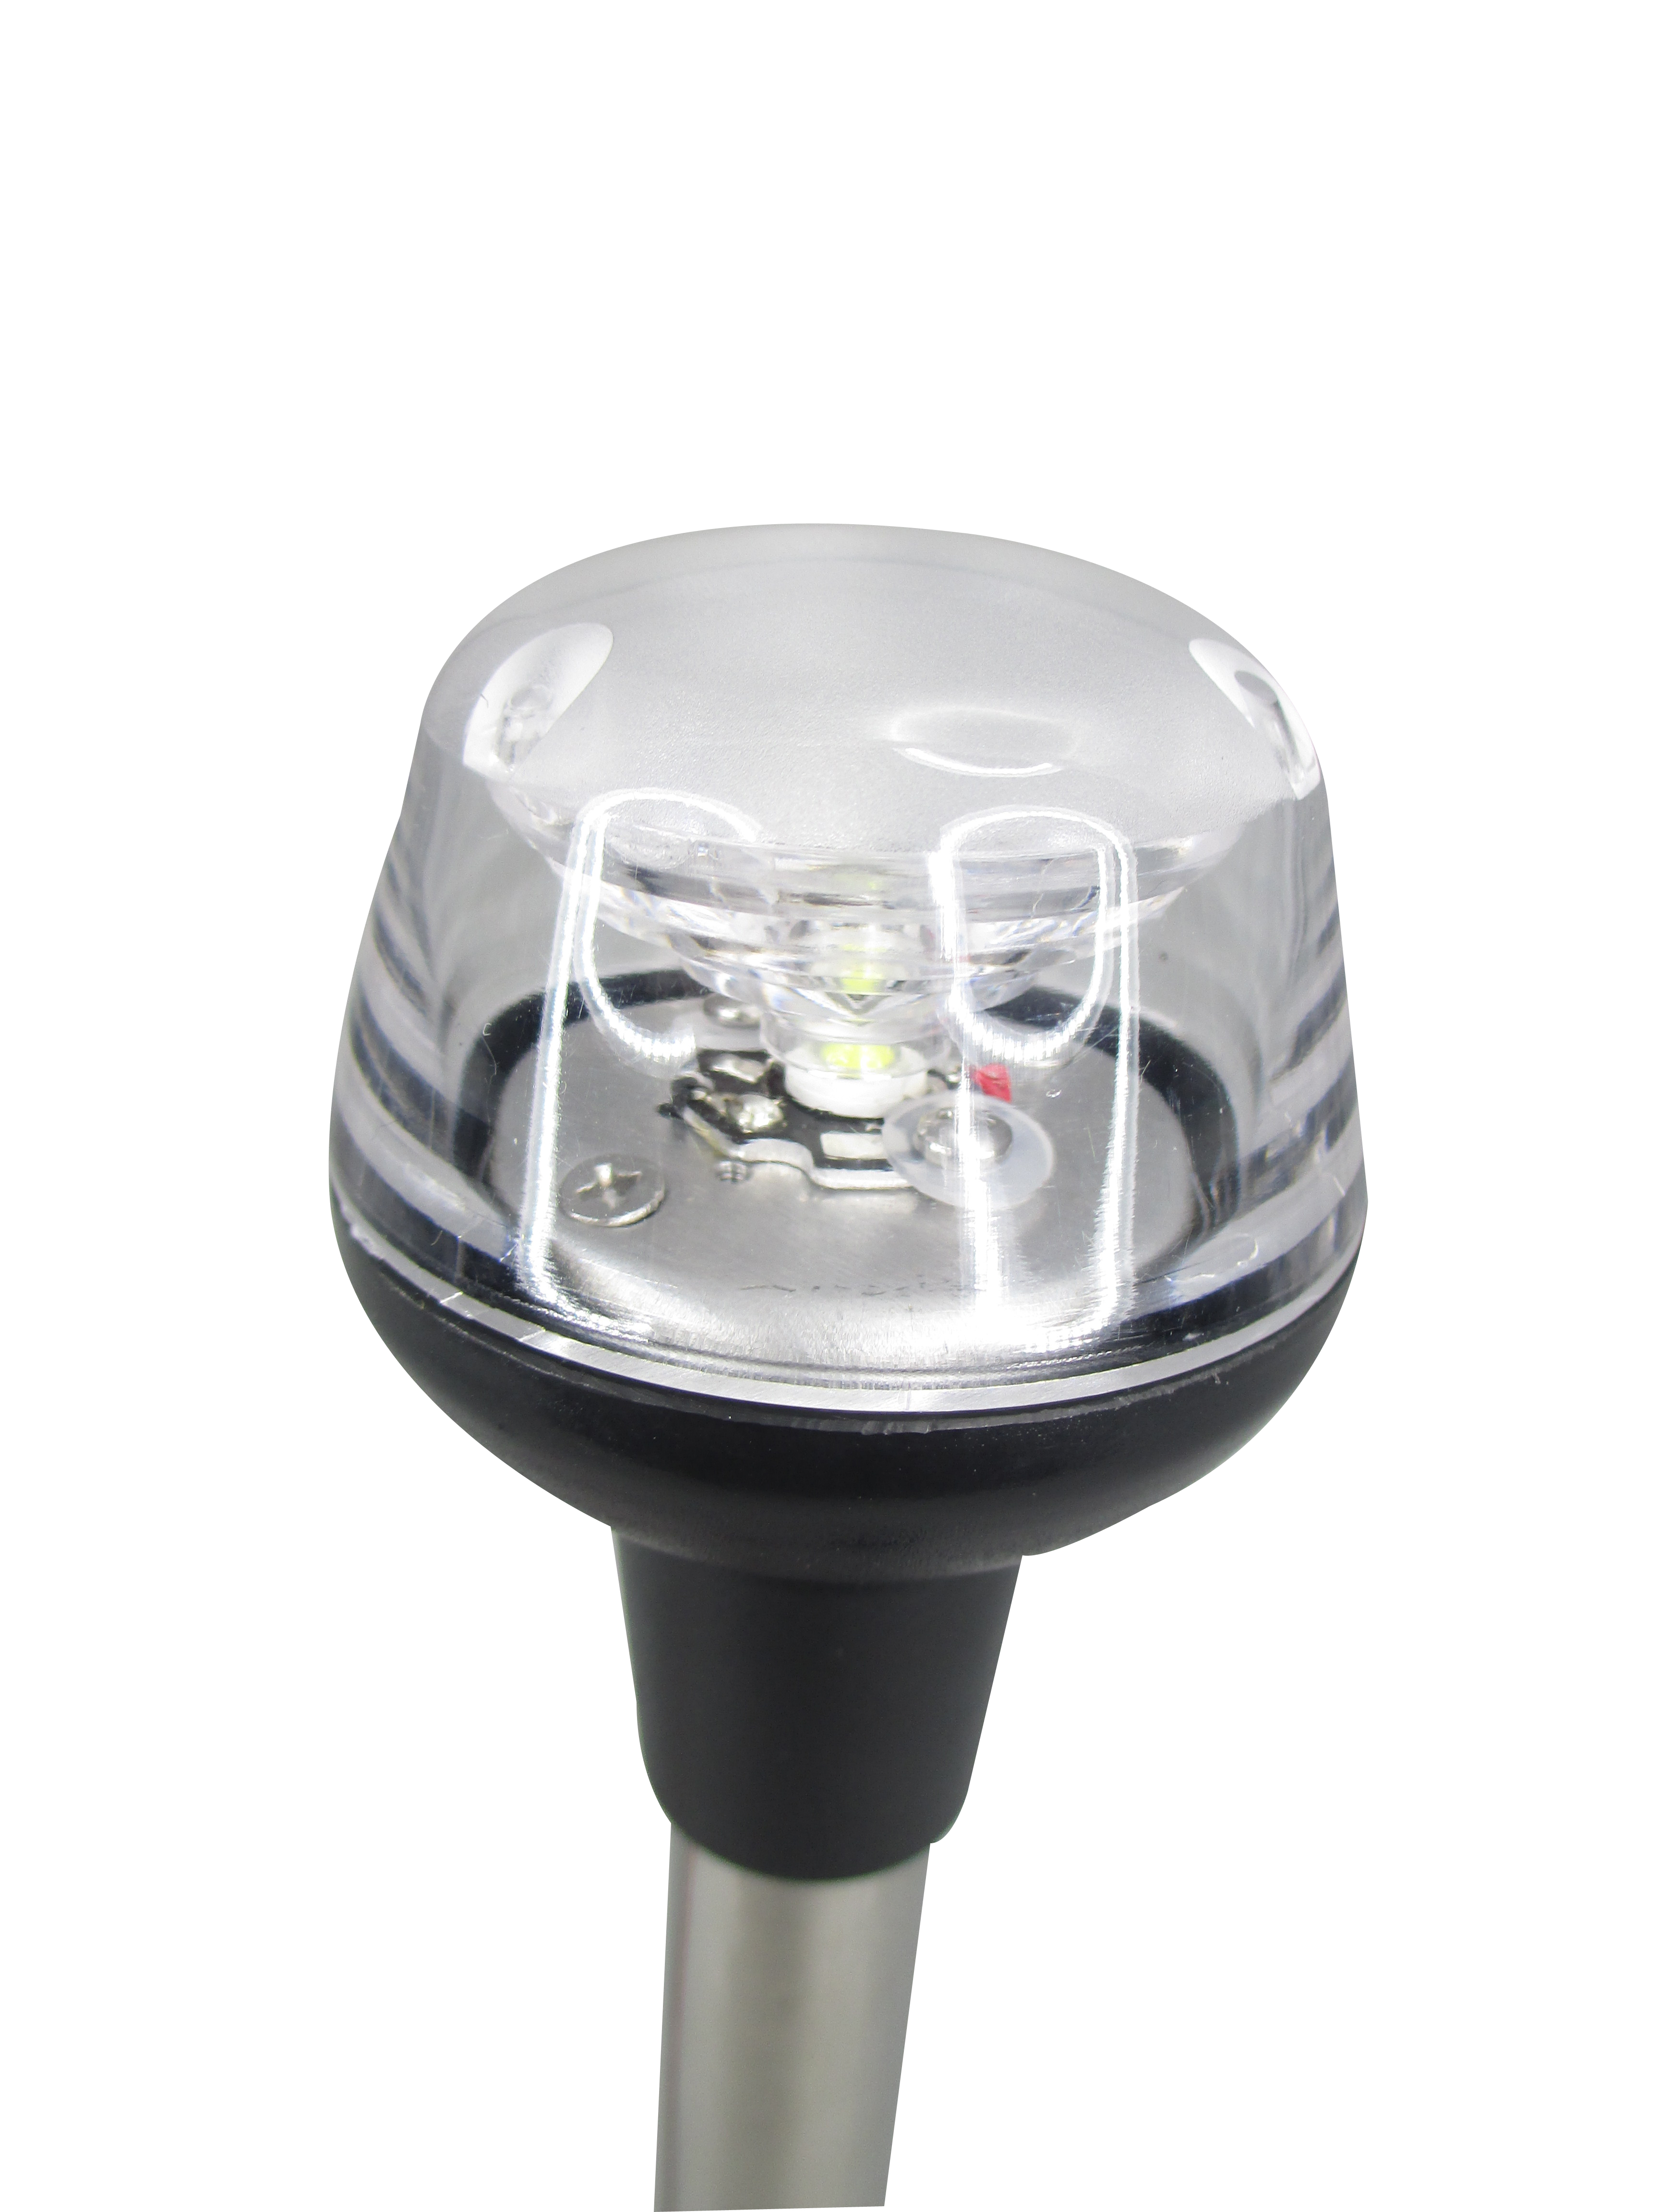 Pactrade Marine Boat Led All Round Anchor Navigation Light